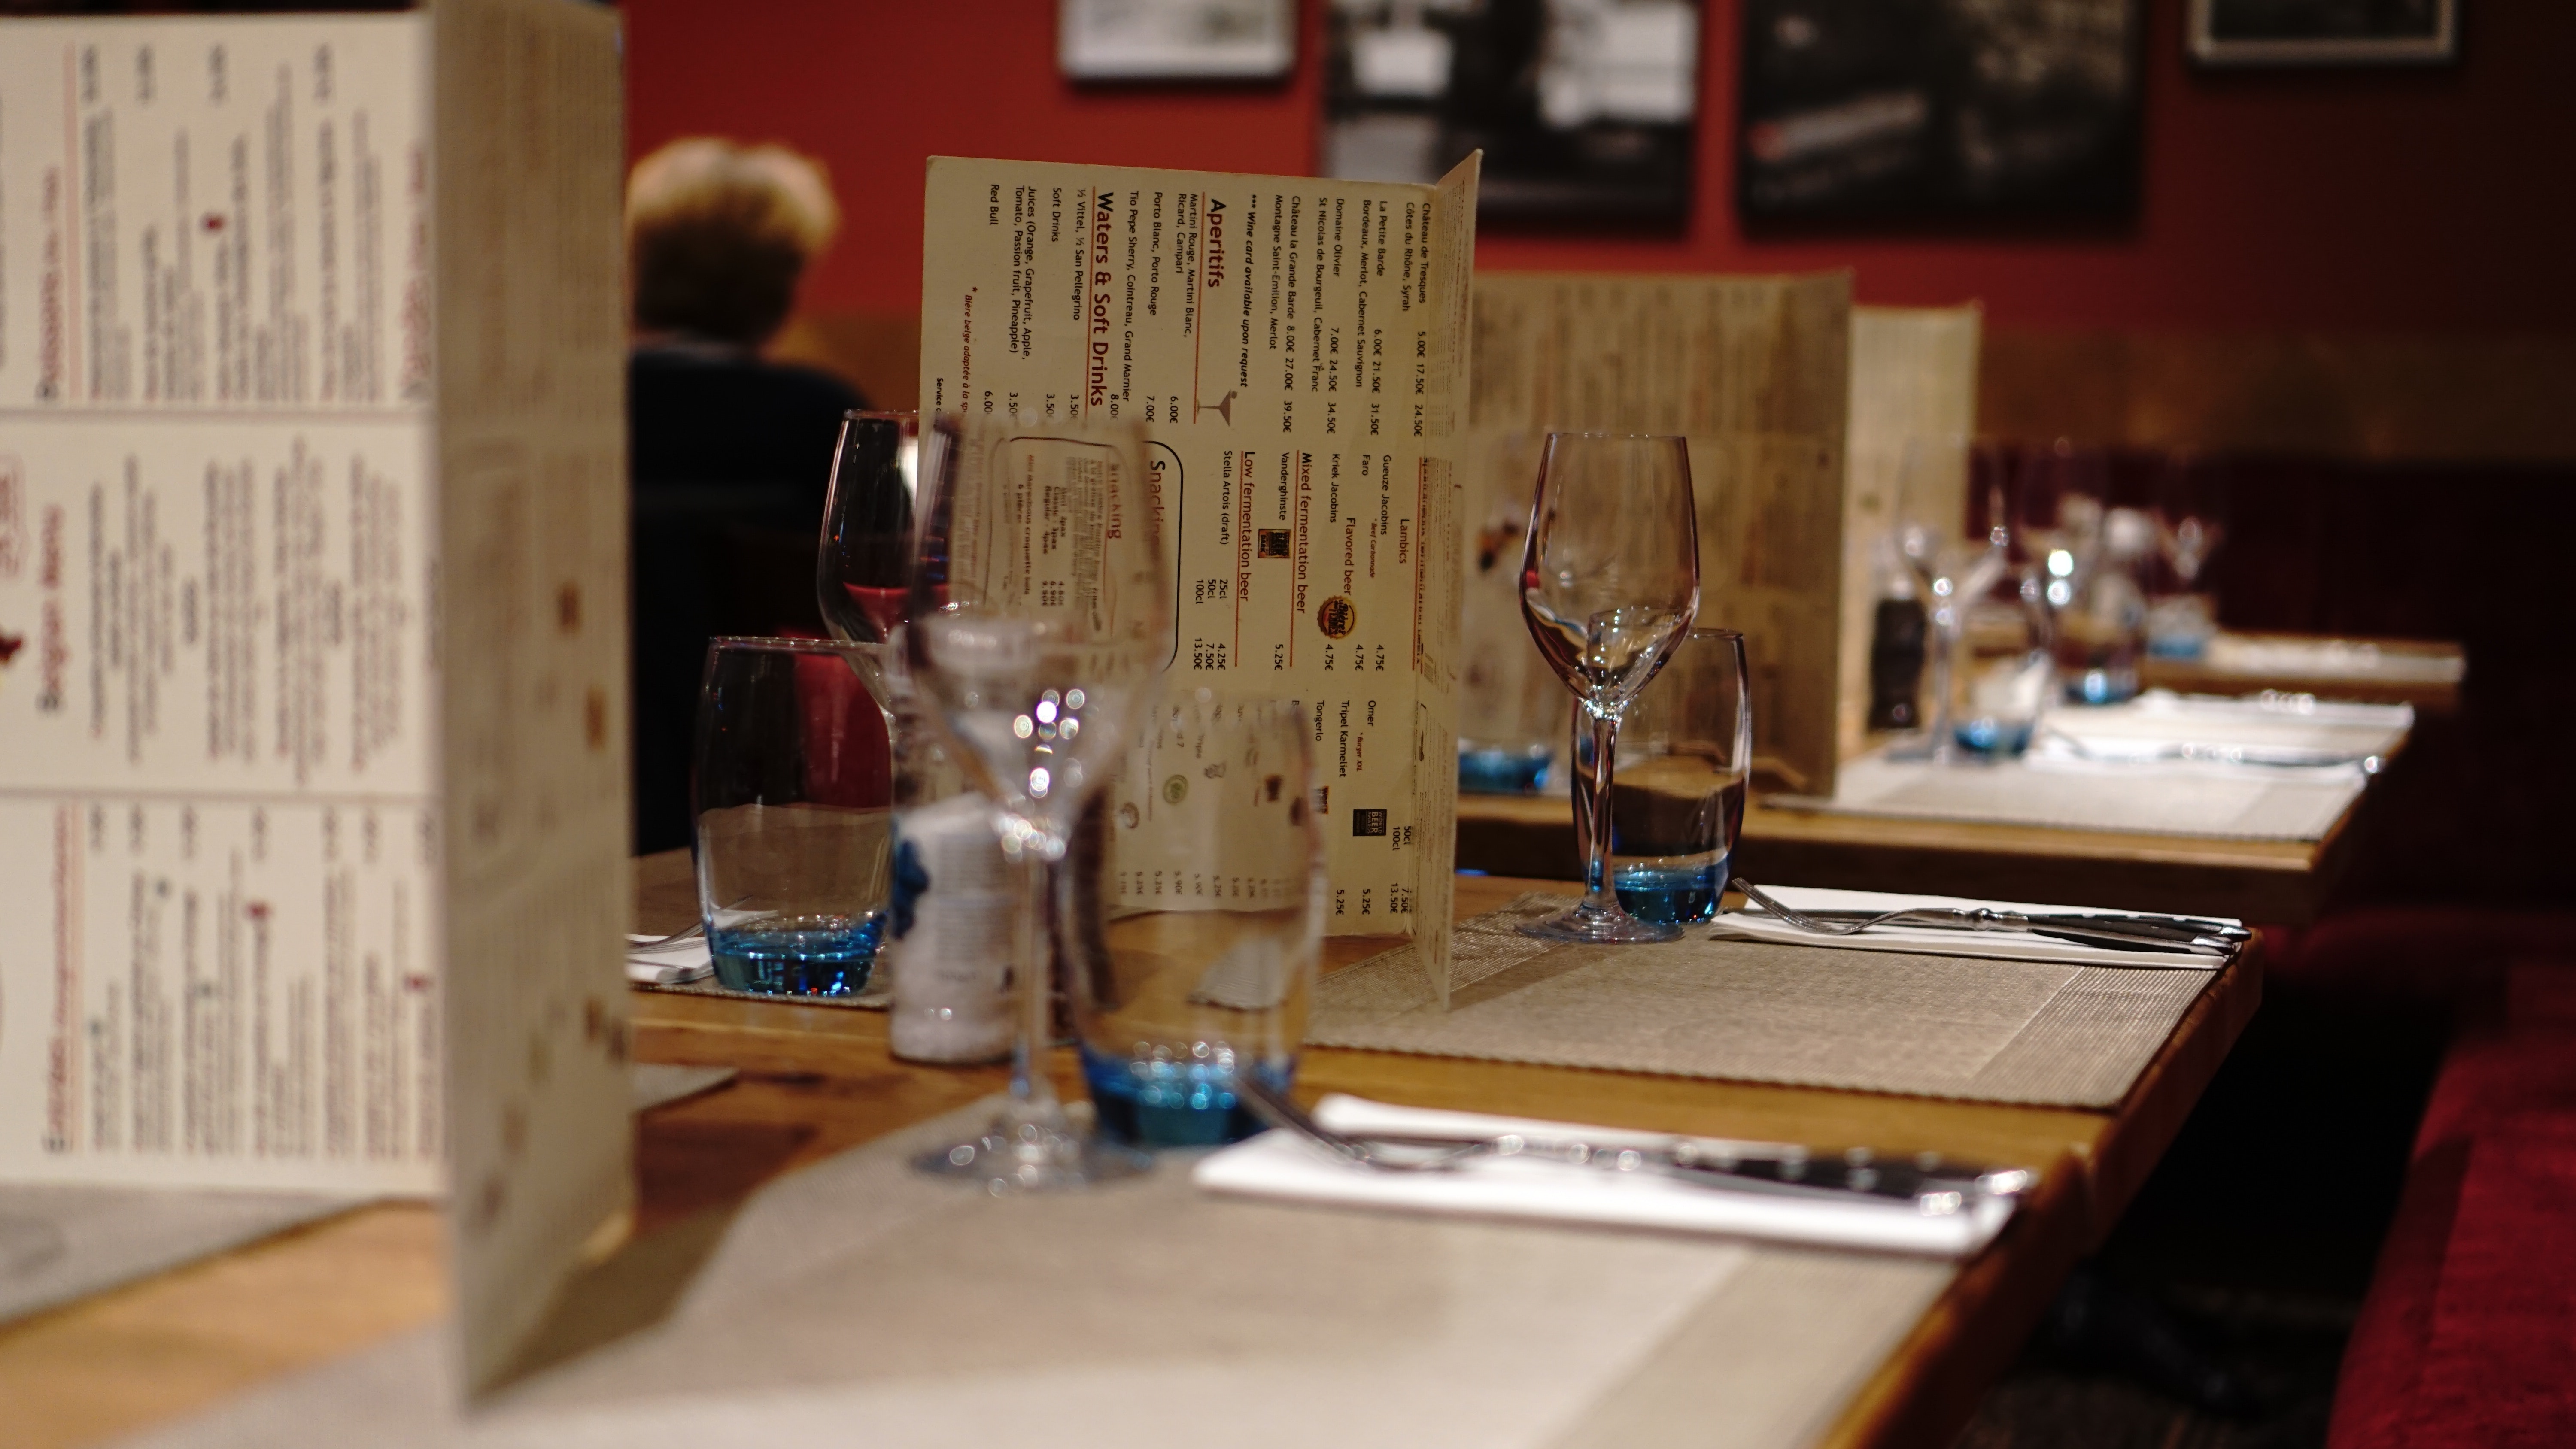 Free stock photo of dining table, dinner table, restaurant